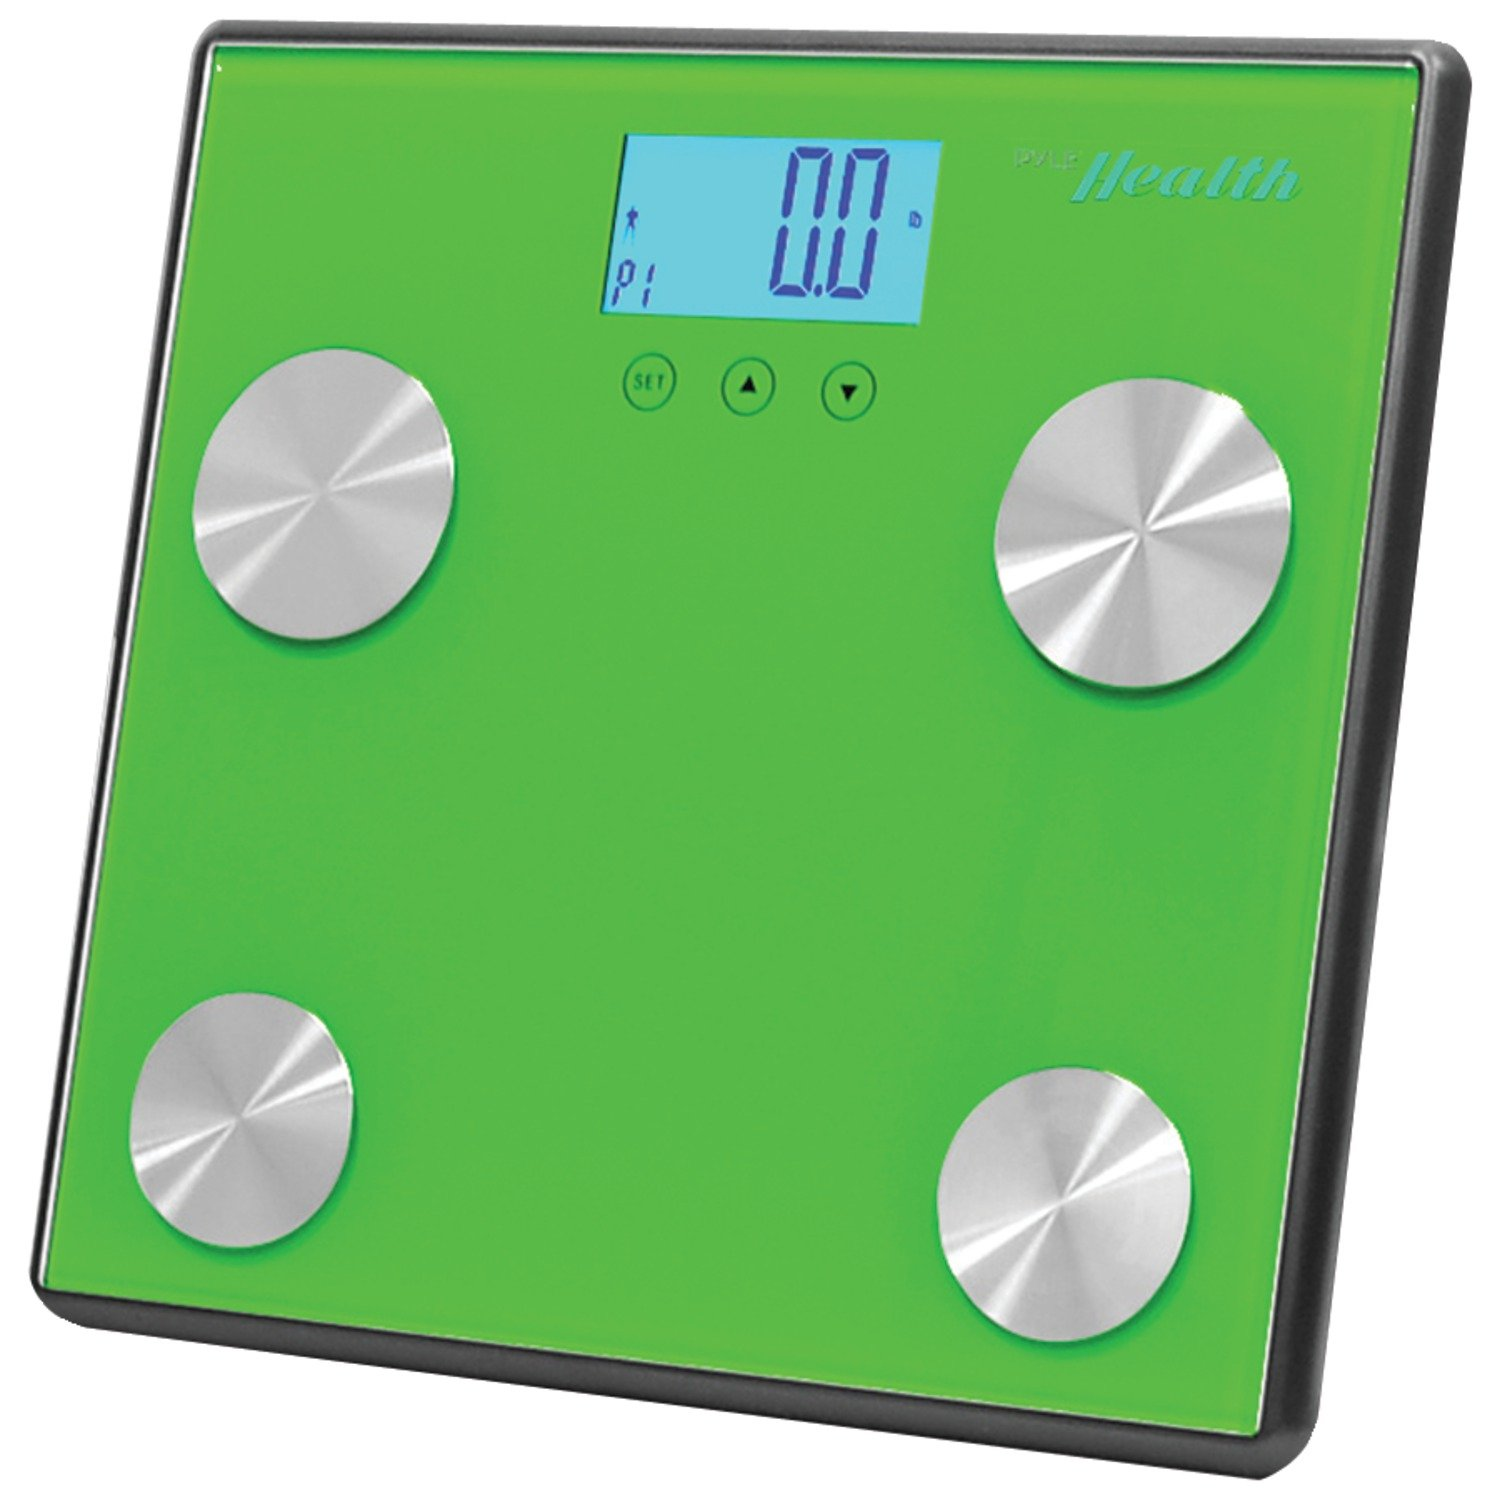 Weight Scales Big W Top 10 Best Bathroom Scales For Big Feet 2018 2020 On